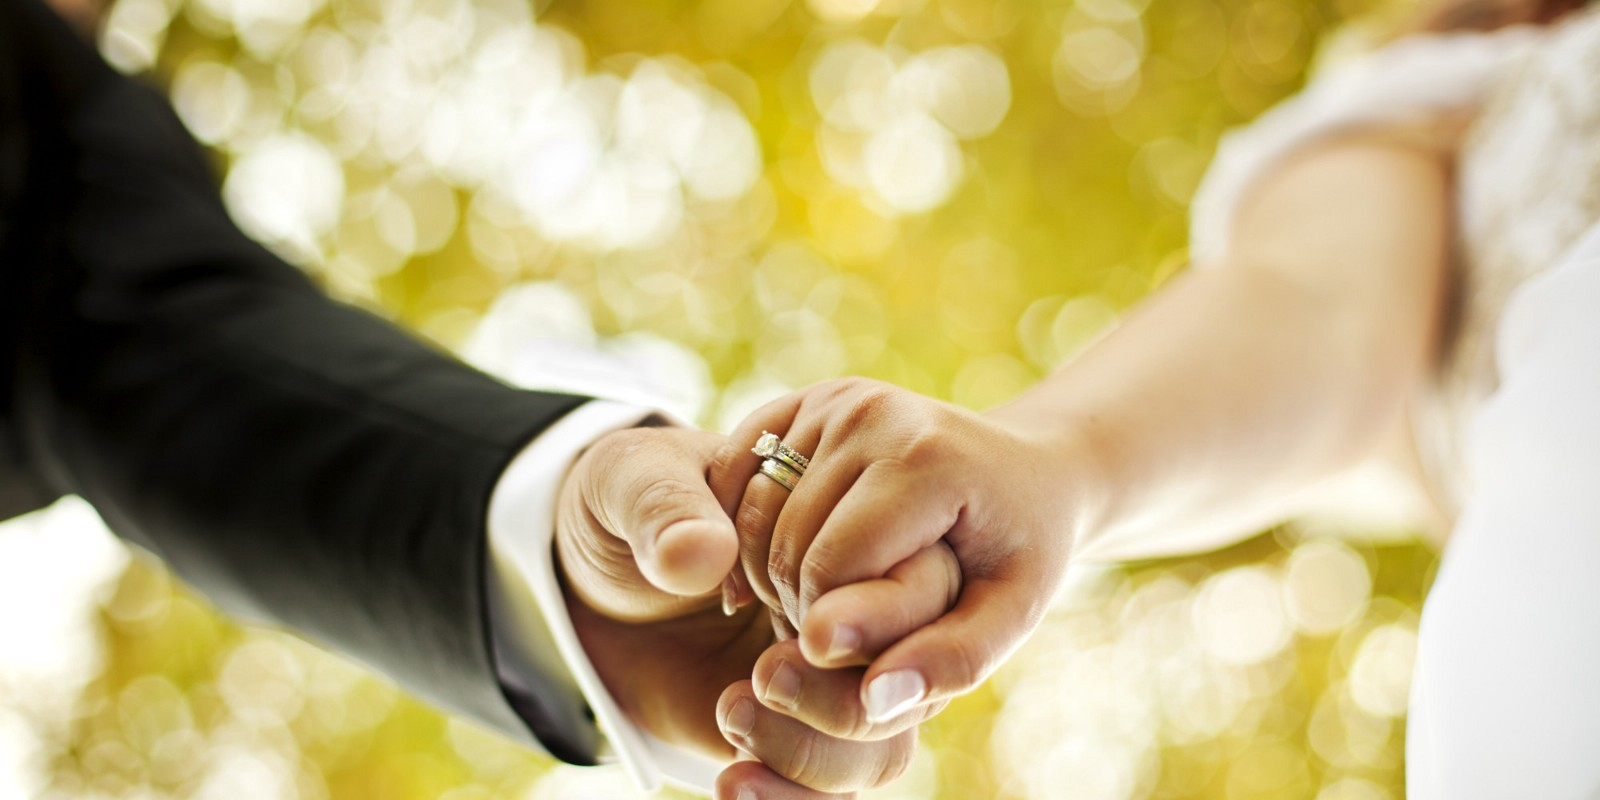 Could Advice For Marriage Help Heal Our Politics Too